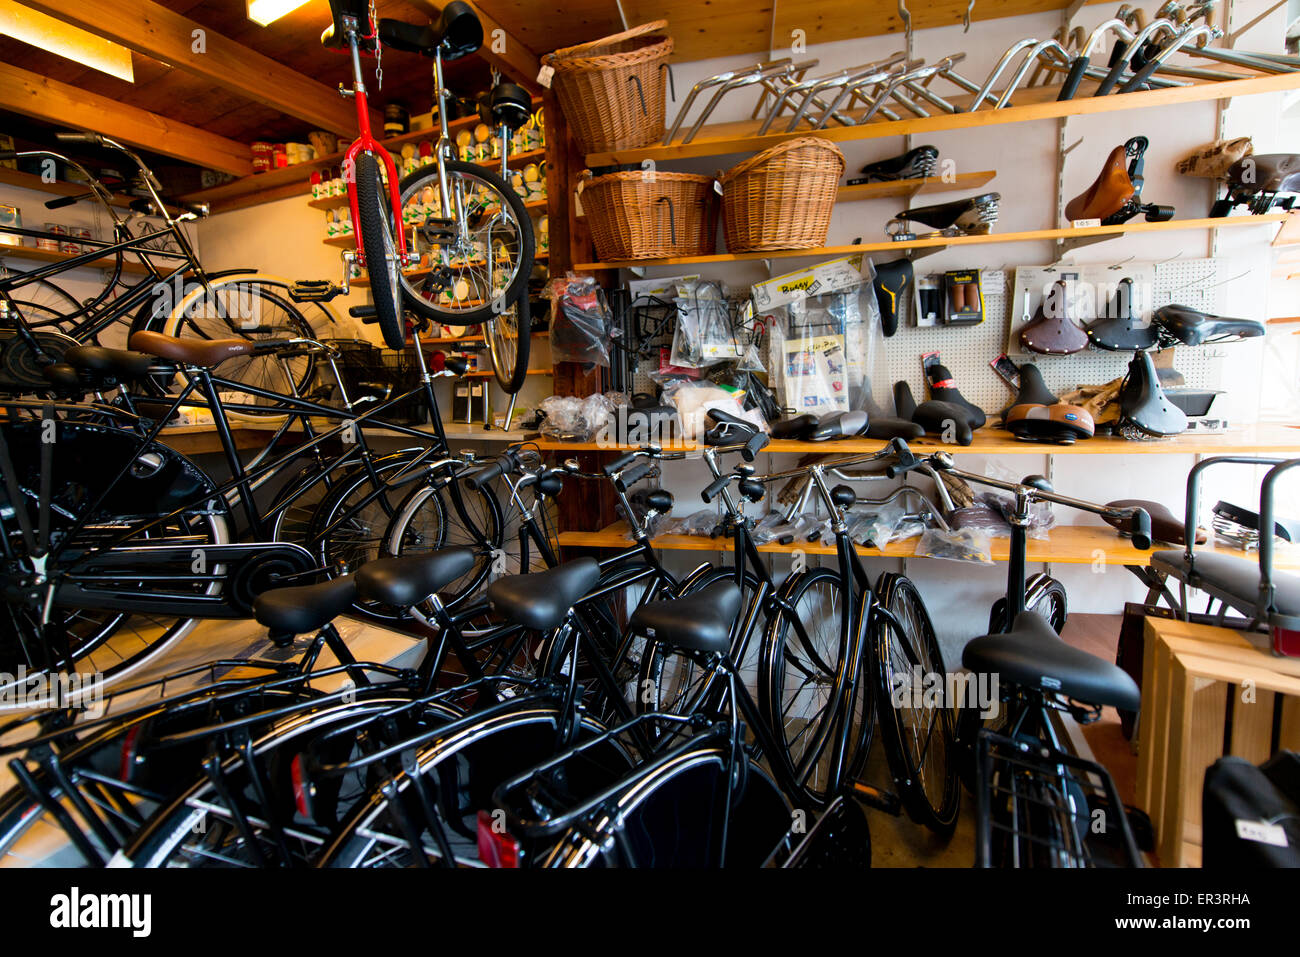 Old fashioned bicycle repair shop in Amersfoort, The Netherlands Stock Photo